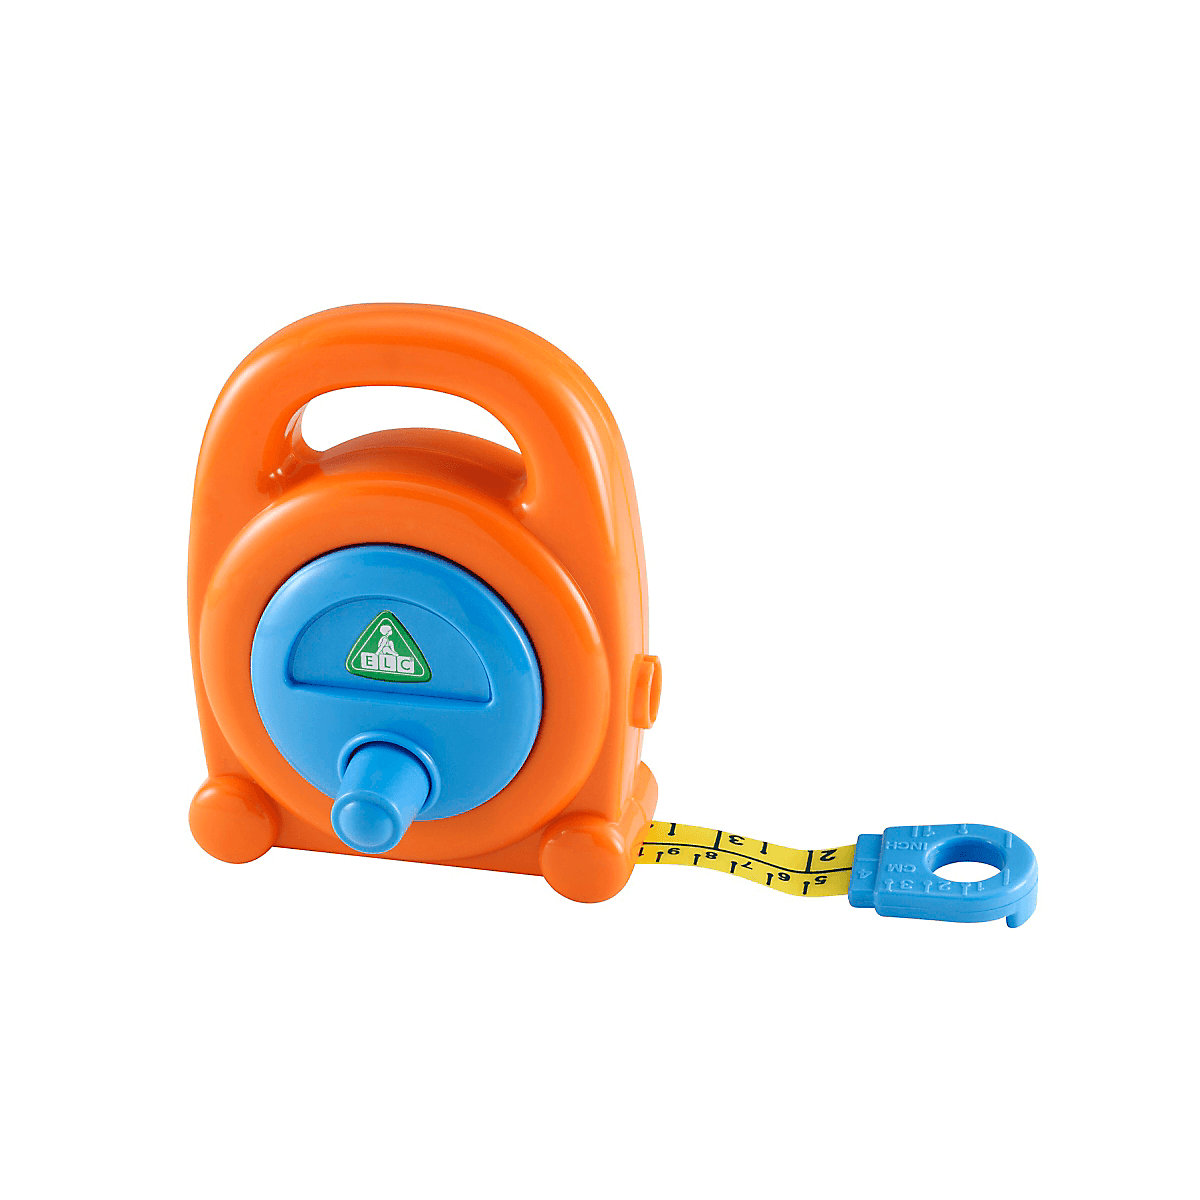 Tape Measure Toy From 3 years